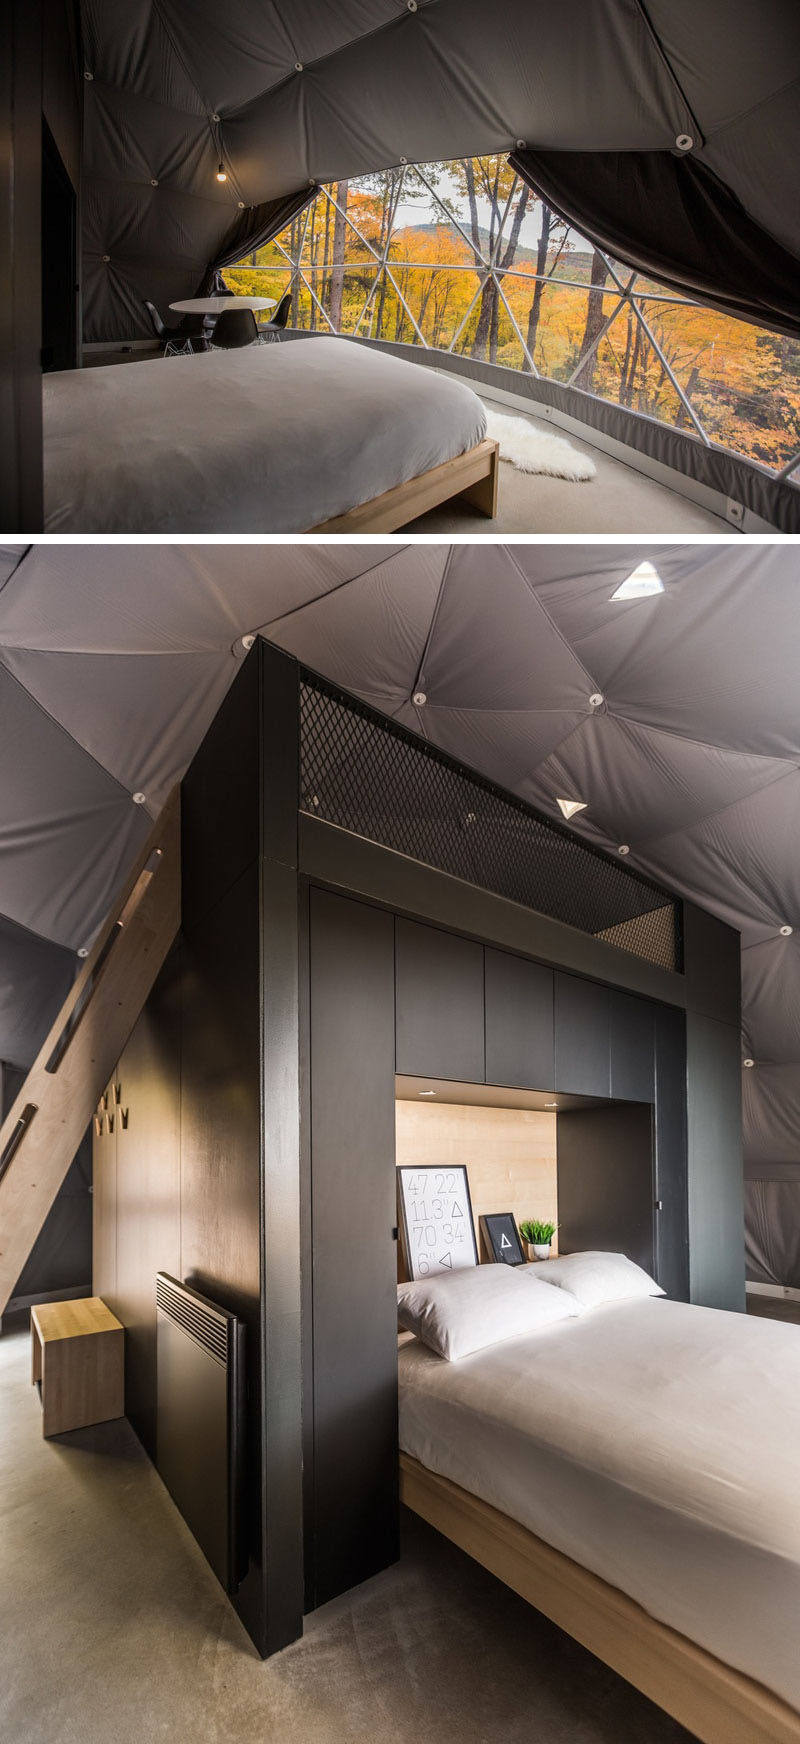 The bed in this modern dome, has been positioned to take advantage of windows within the dome's design, and black cabinetry, similar to the kitchen, wraps around the headboard. #Dome #Bed #Travel #Vacation